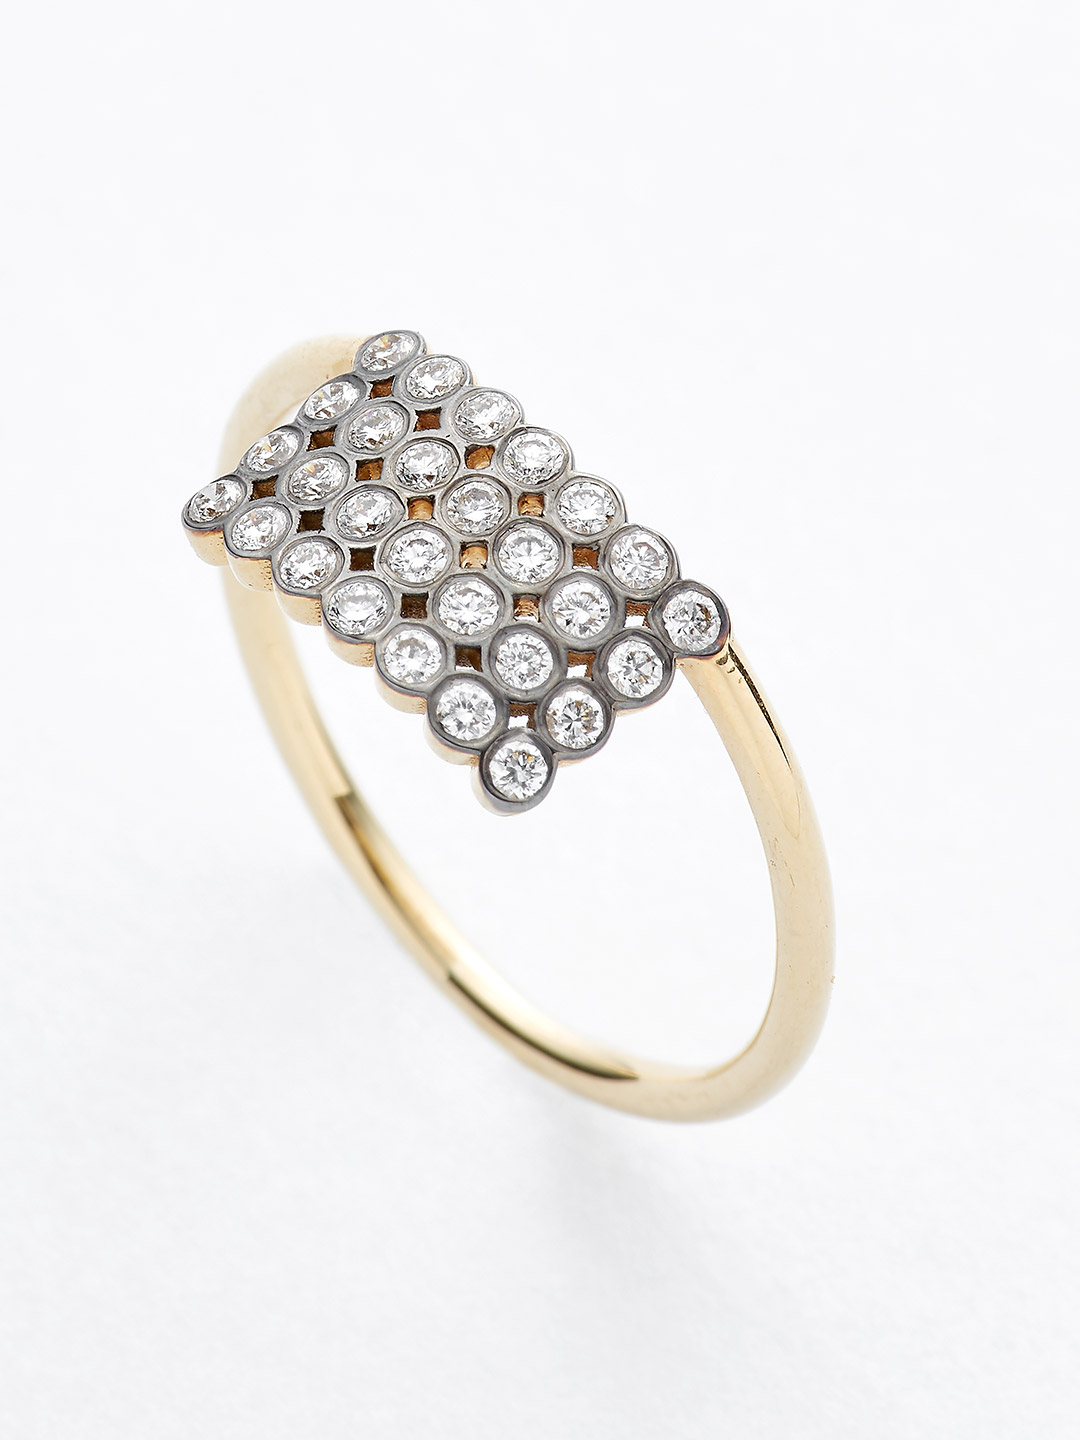 Diamond Ring - 18K Yellow Gold